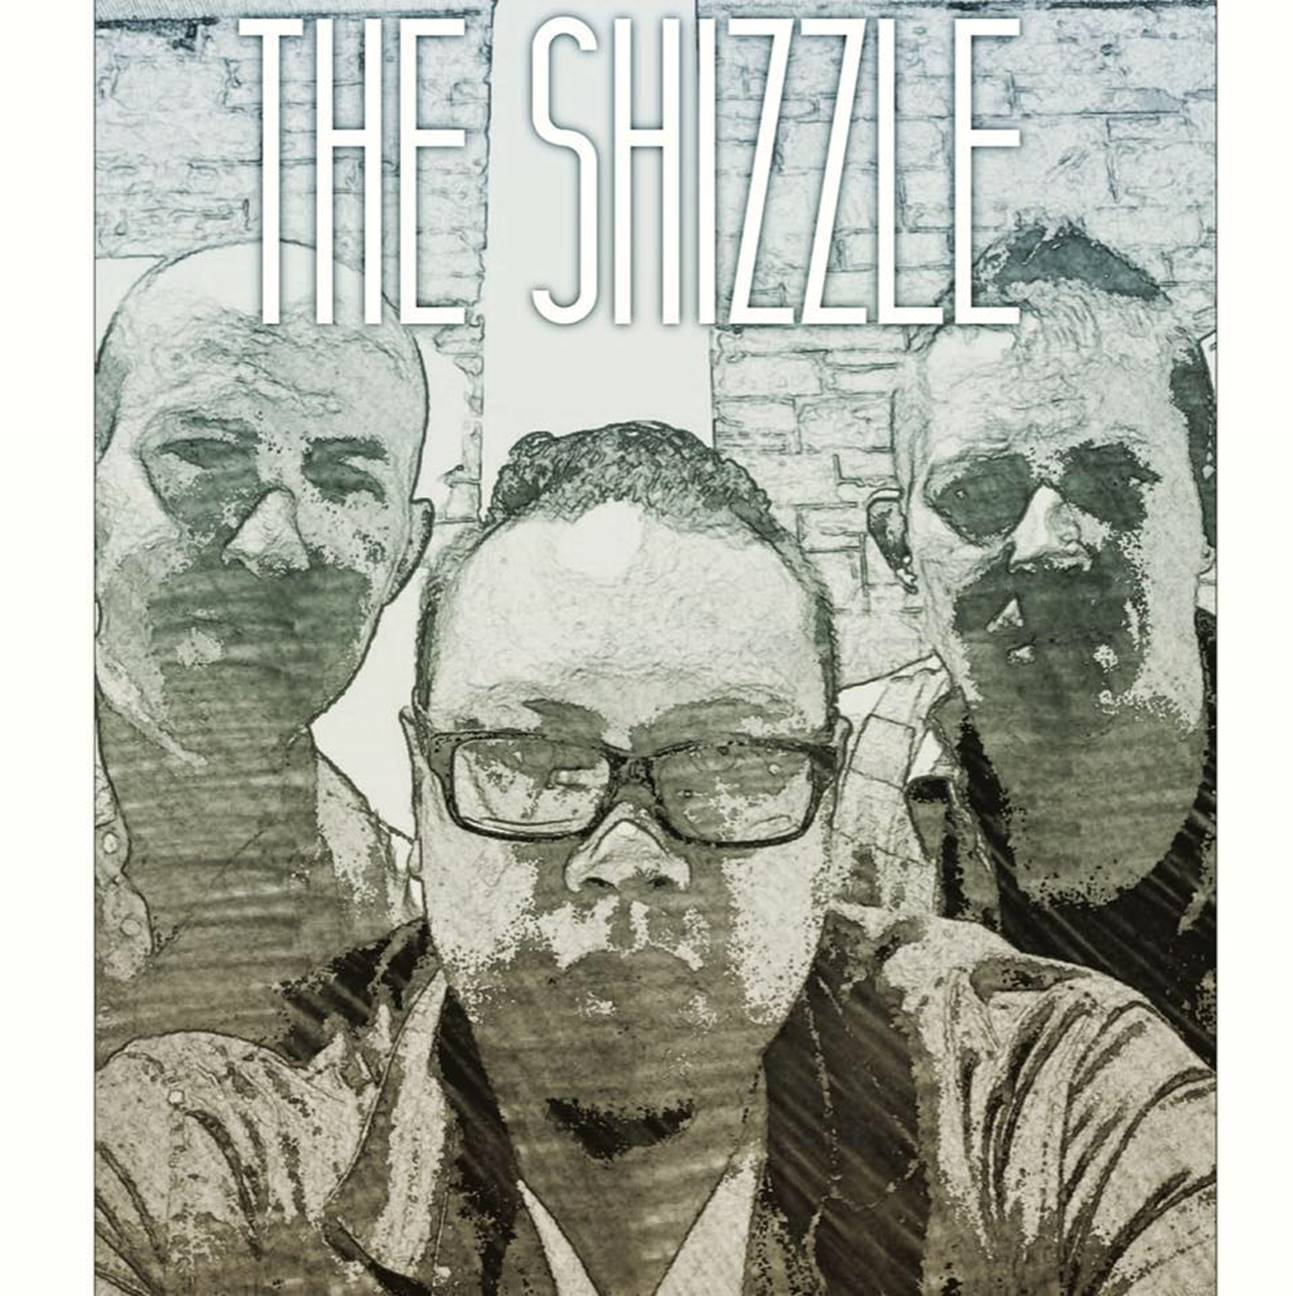 The Shizzle - Band